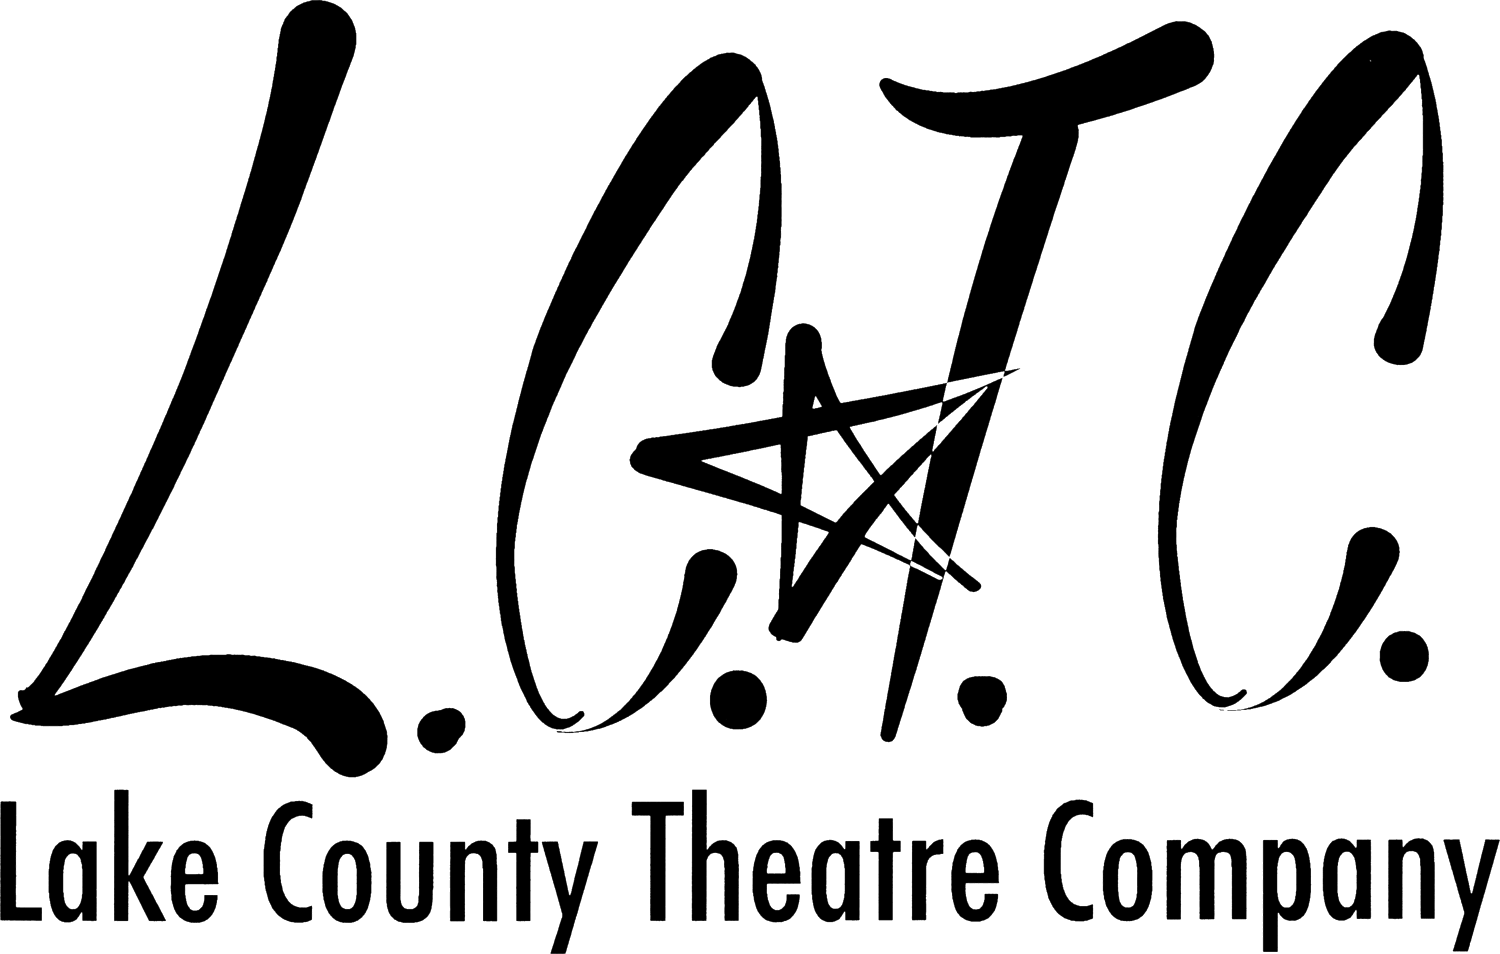 Lake County Theatre Company